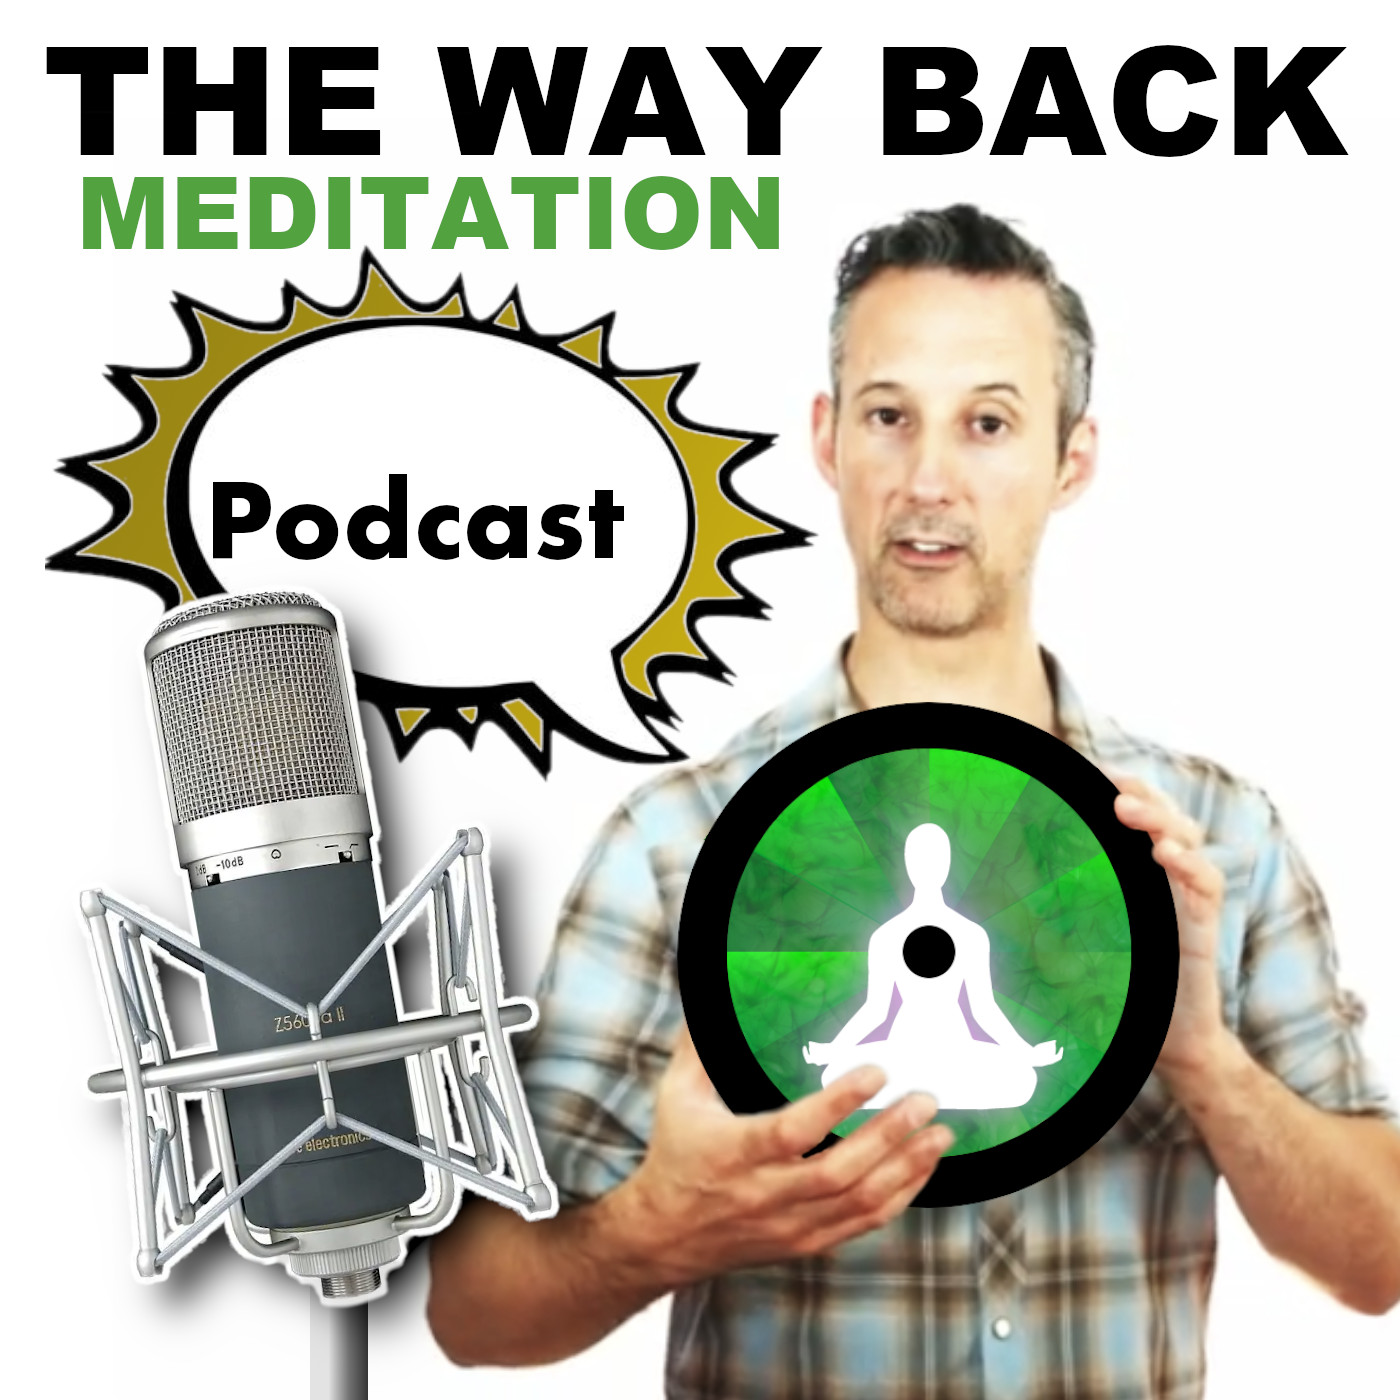 The Way Back Meditation Podcast